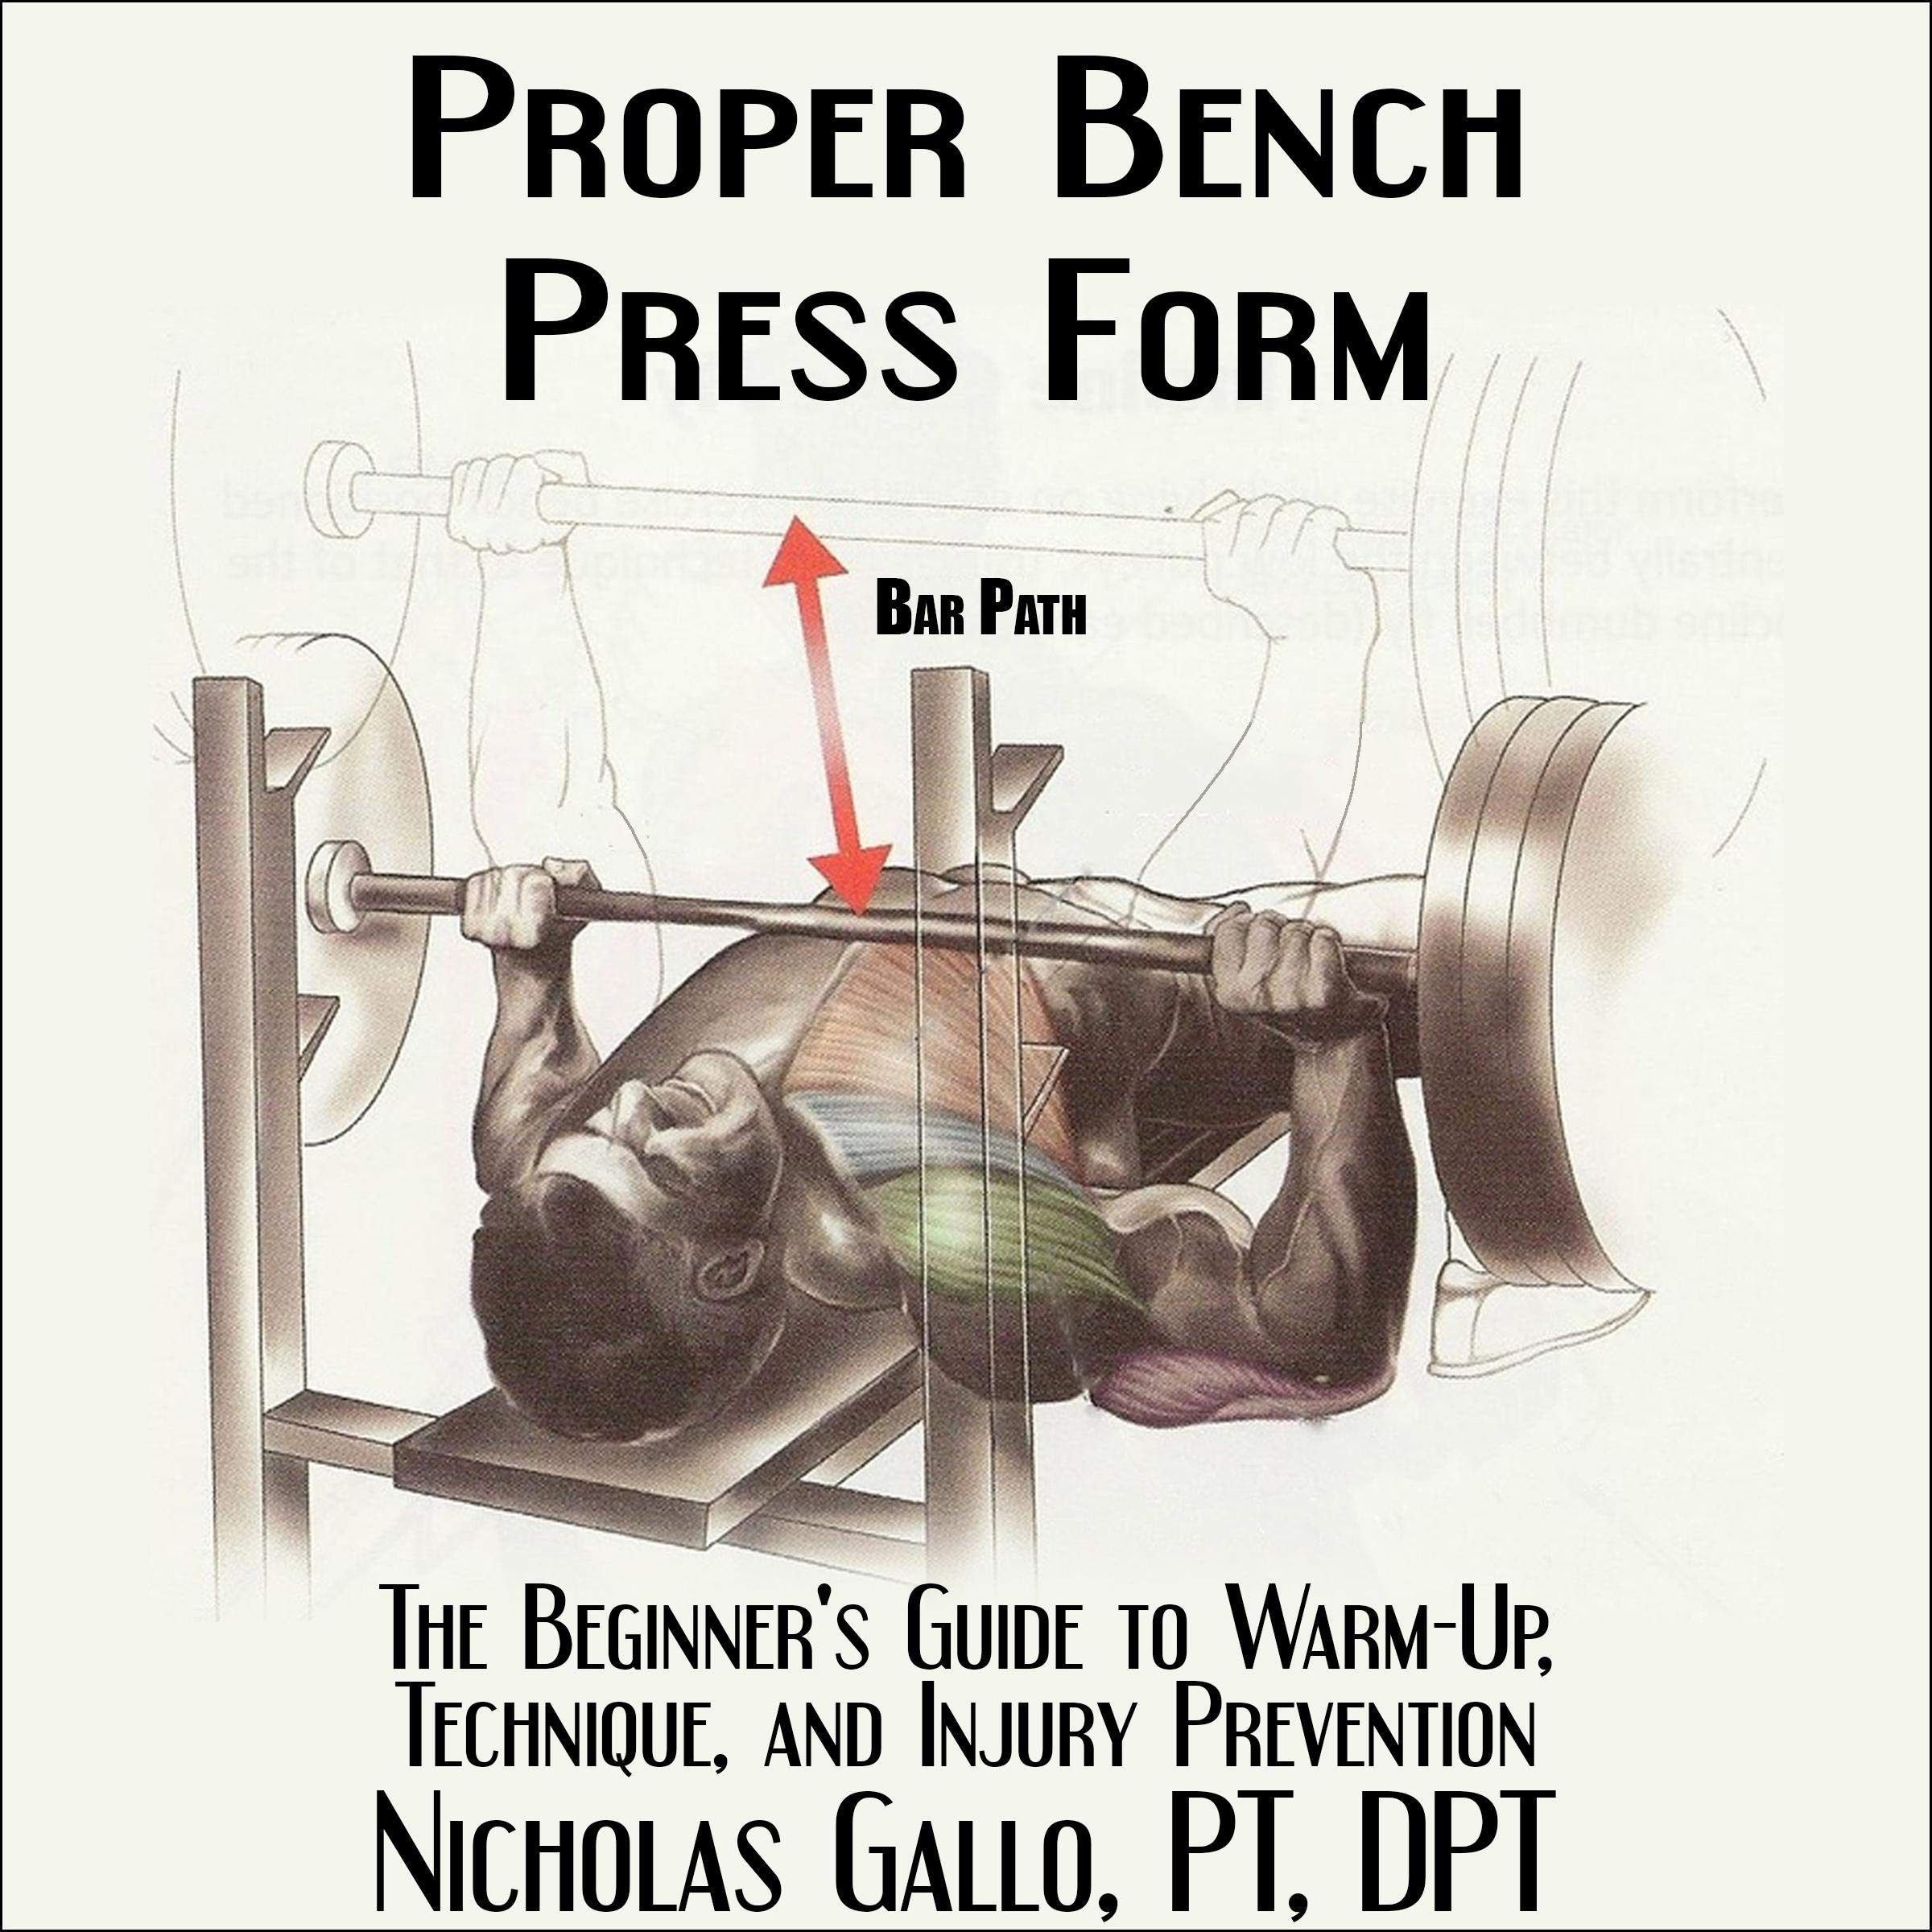 Image OfProper Bench Press Form: The Beginner's Guide To Warm-Up, Technique, And Injury Prevention